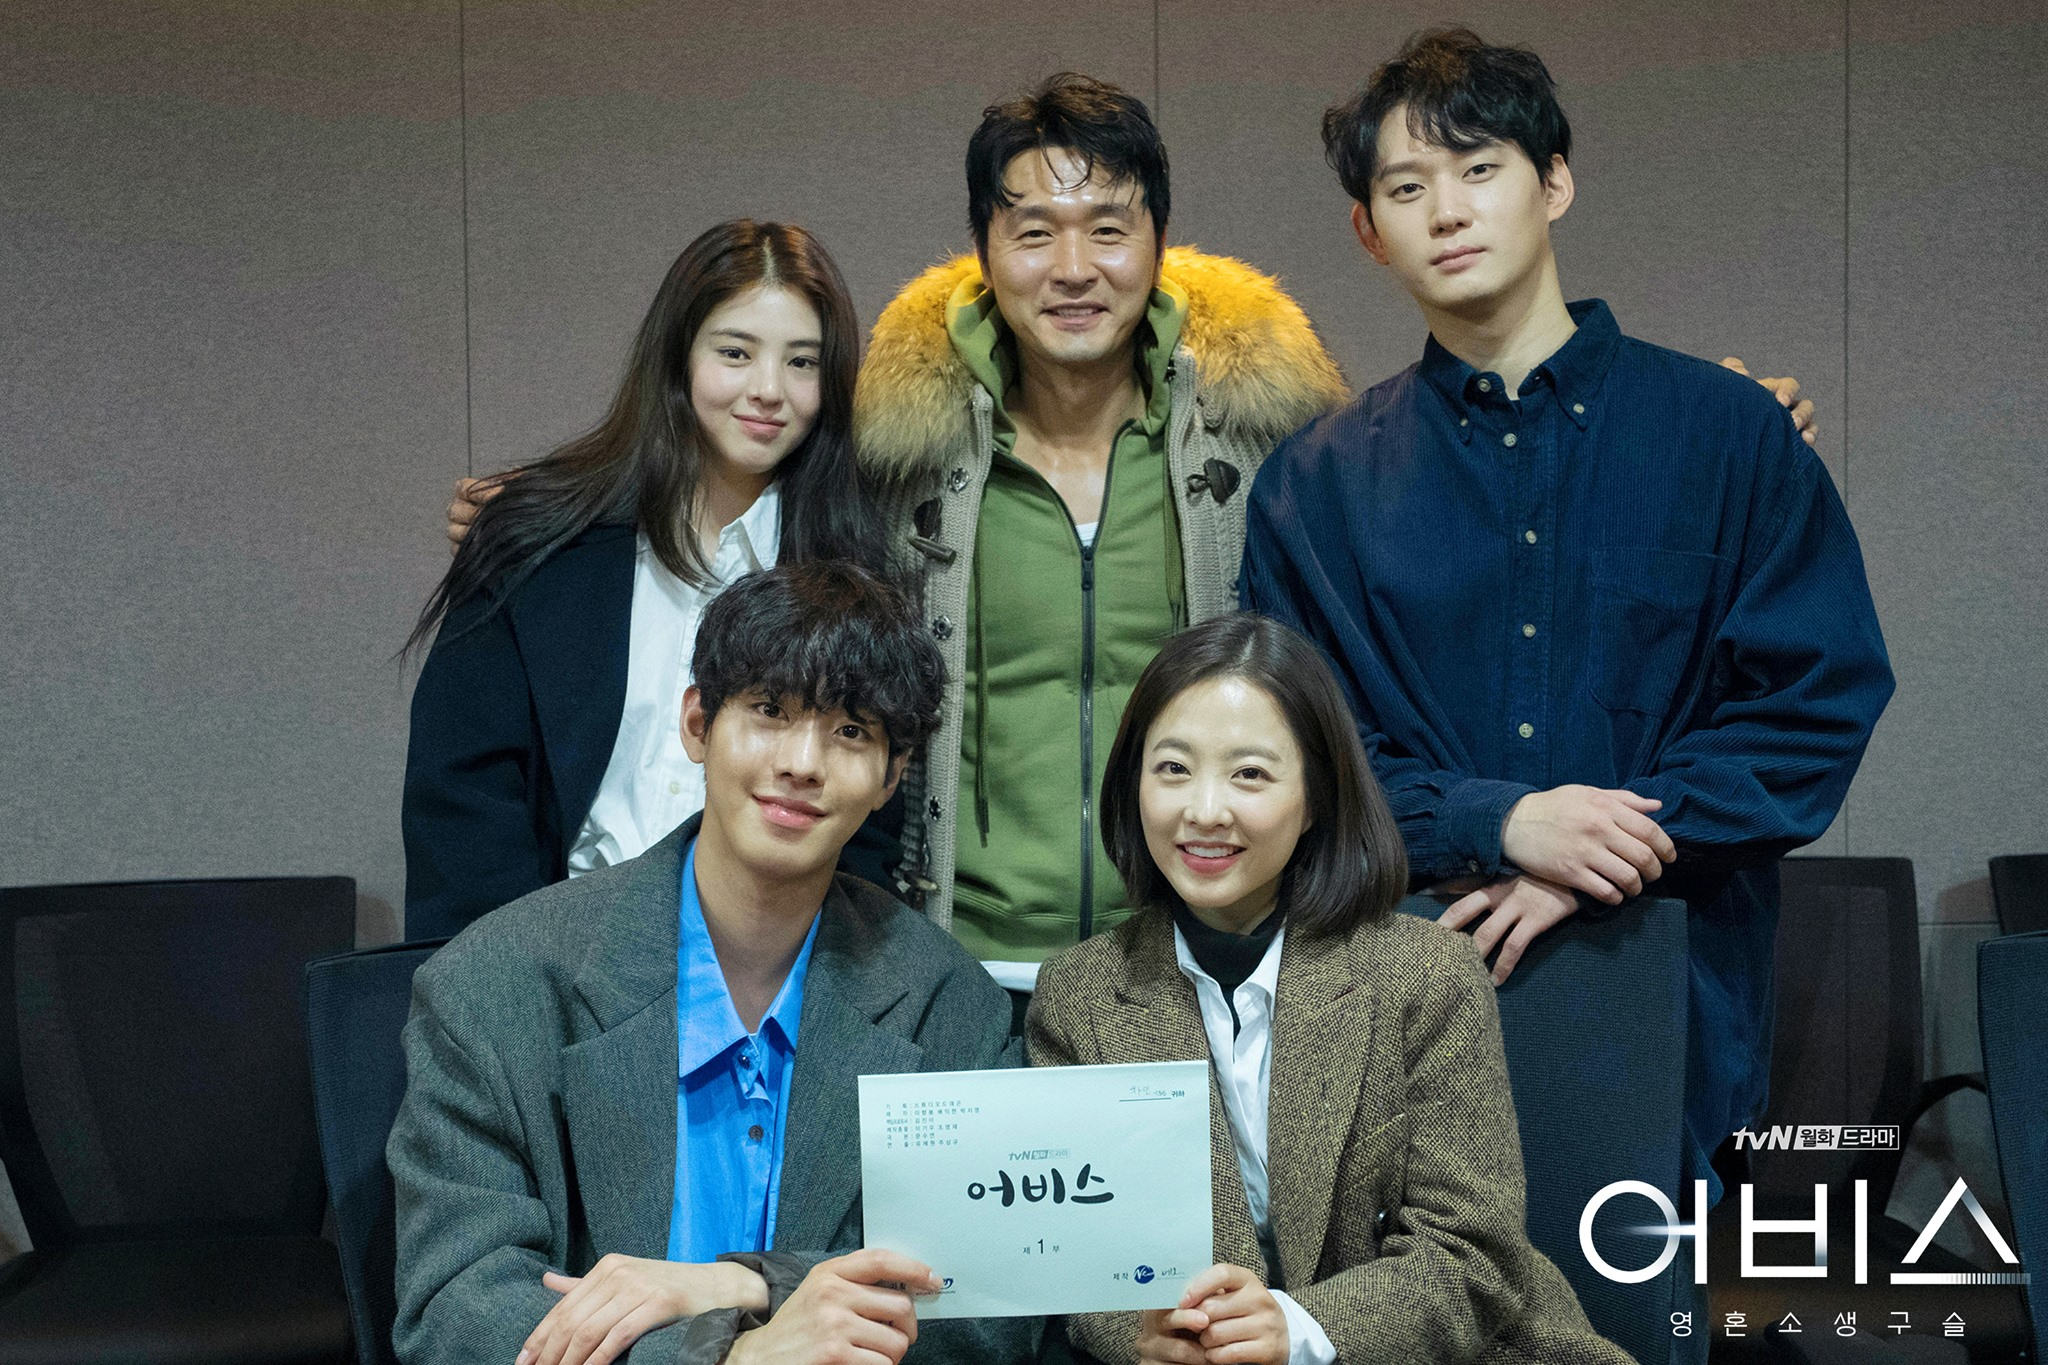 abyss cast, abyss drama, abyss summary, abyss ahn hyoseop, abyss park boyoung